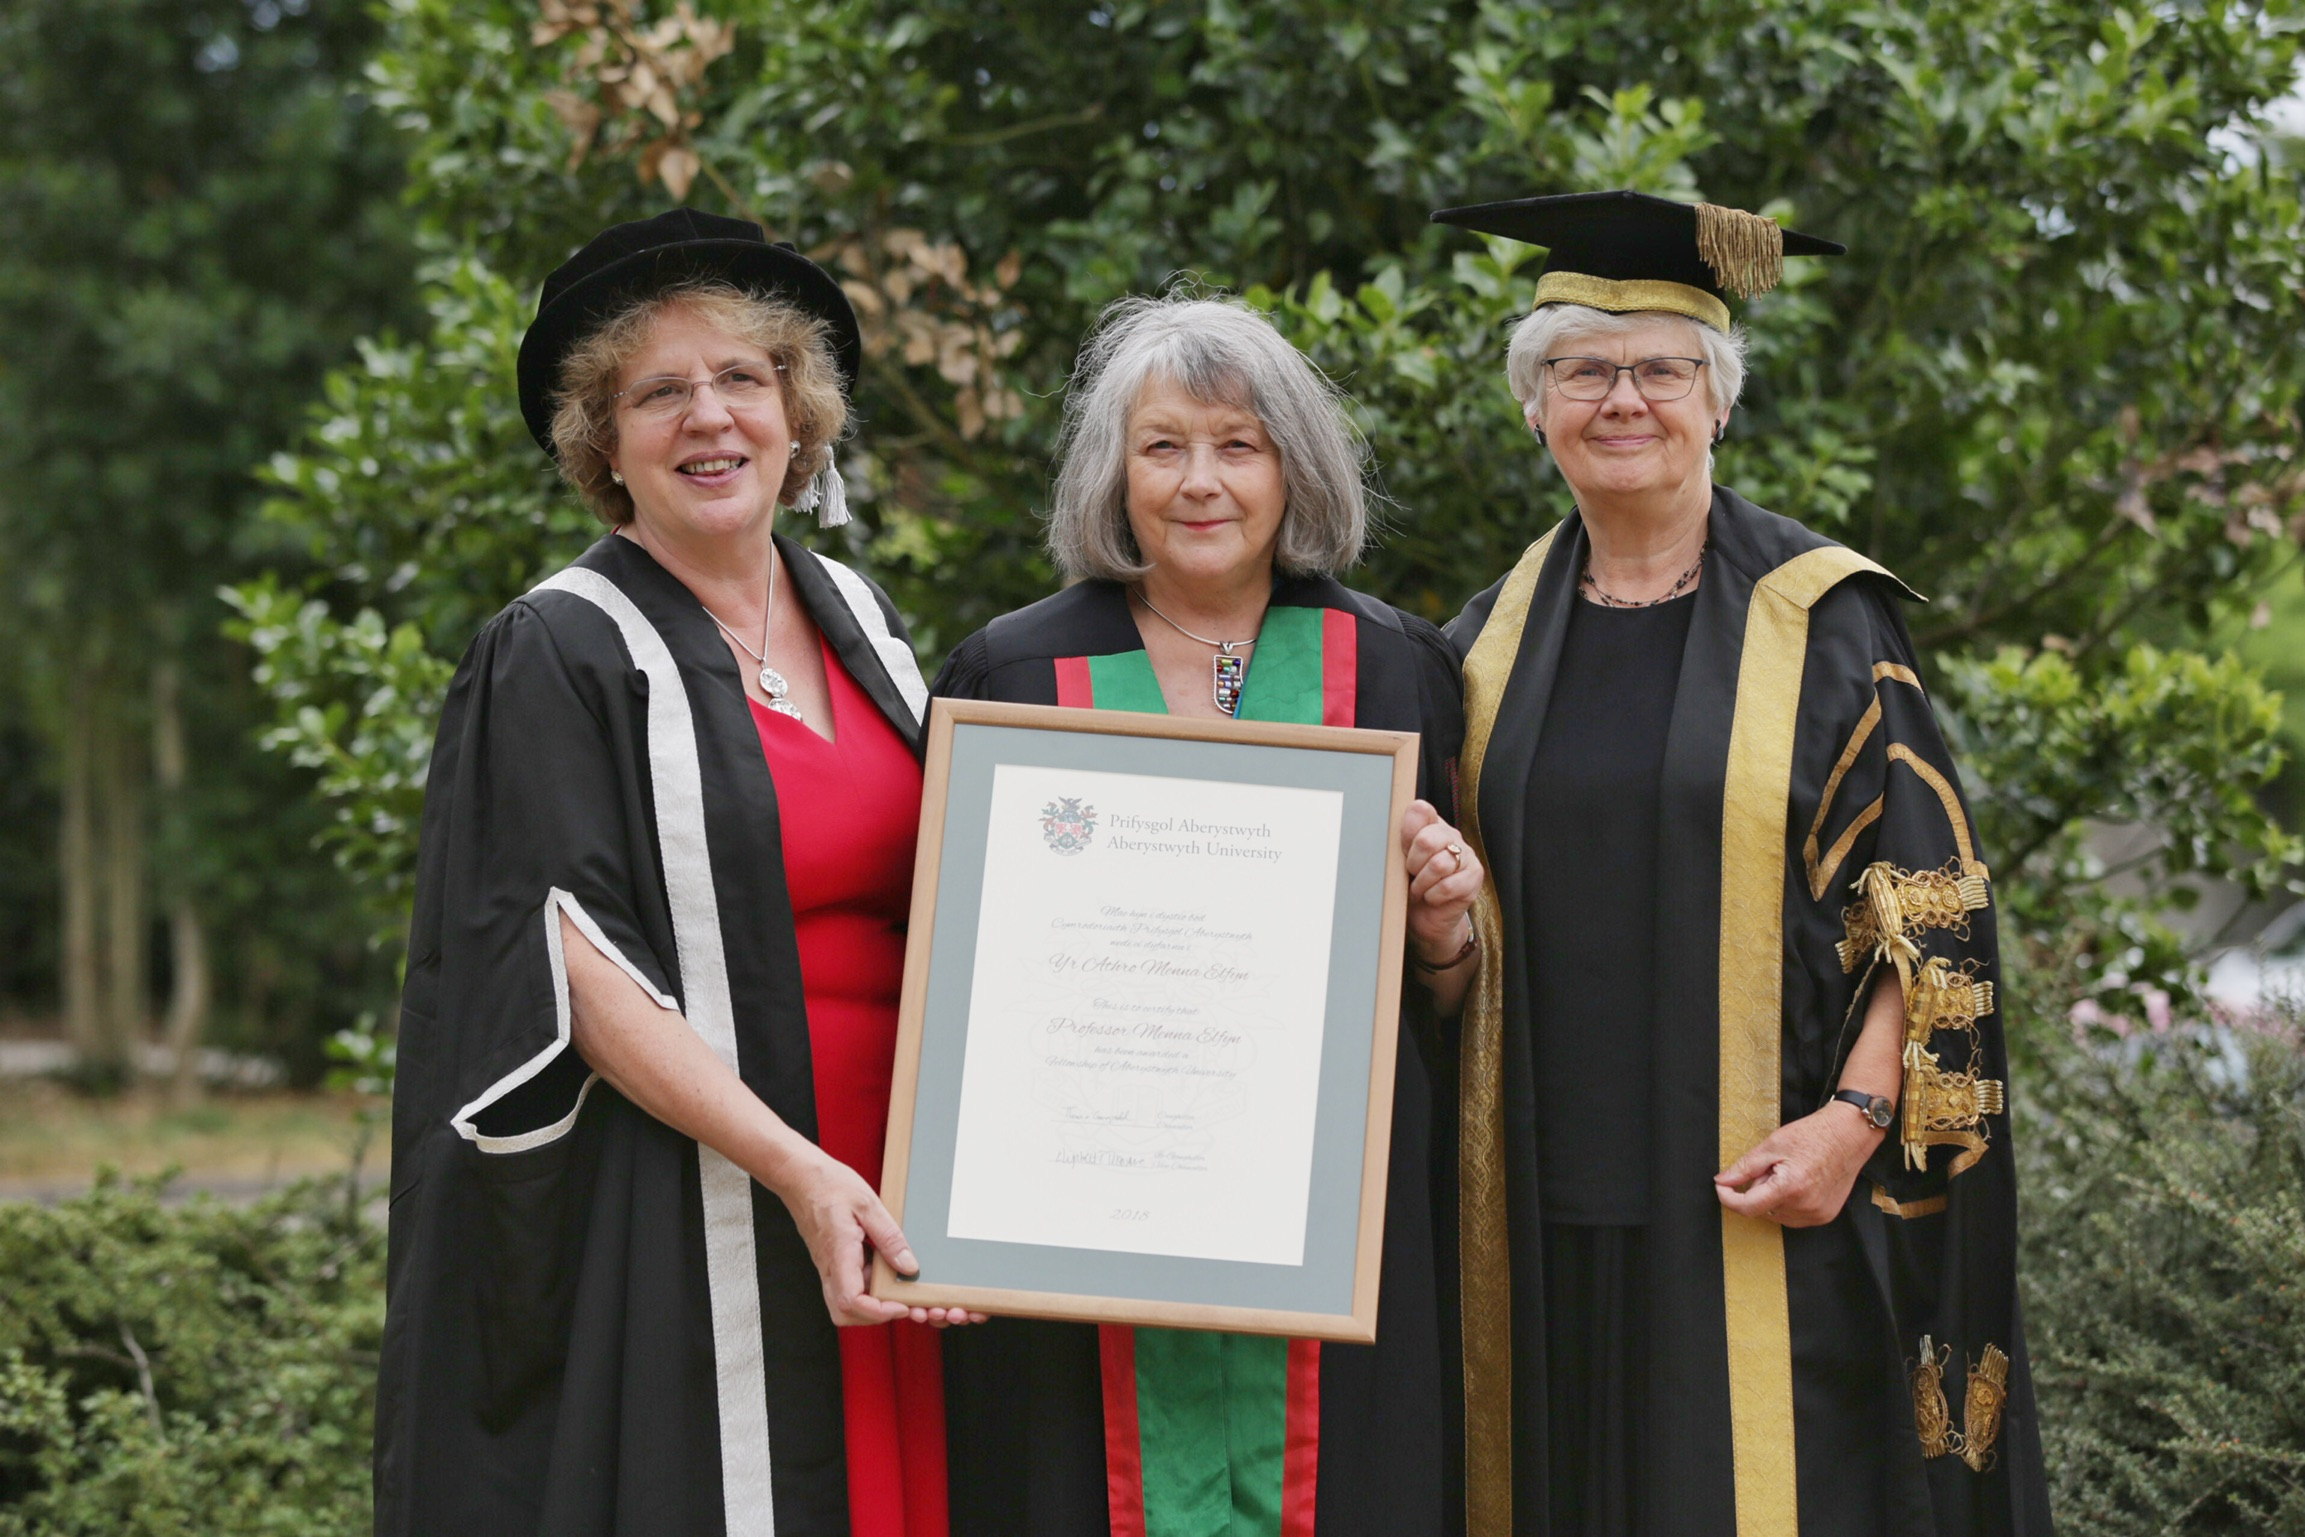 Left to right:  Professor Elizabeth Treasure, Vice-Chancellor of Aberystwyth University; Professor Menna Elfyn, Honorary Fellow of Aberystwyth University; Miss Gwerfyl Pierce Jones, Pro-Chancellor of Aberystwyth University